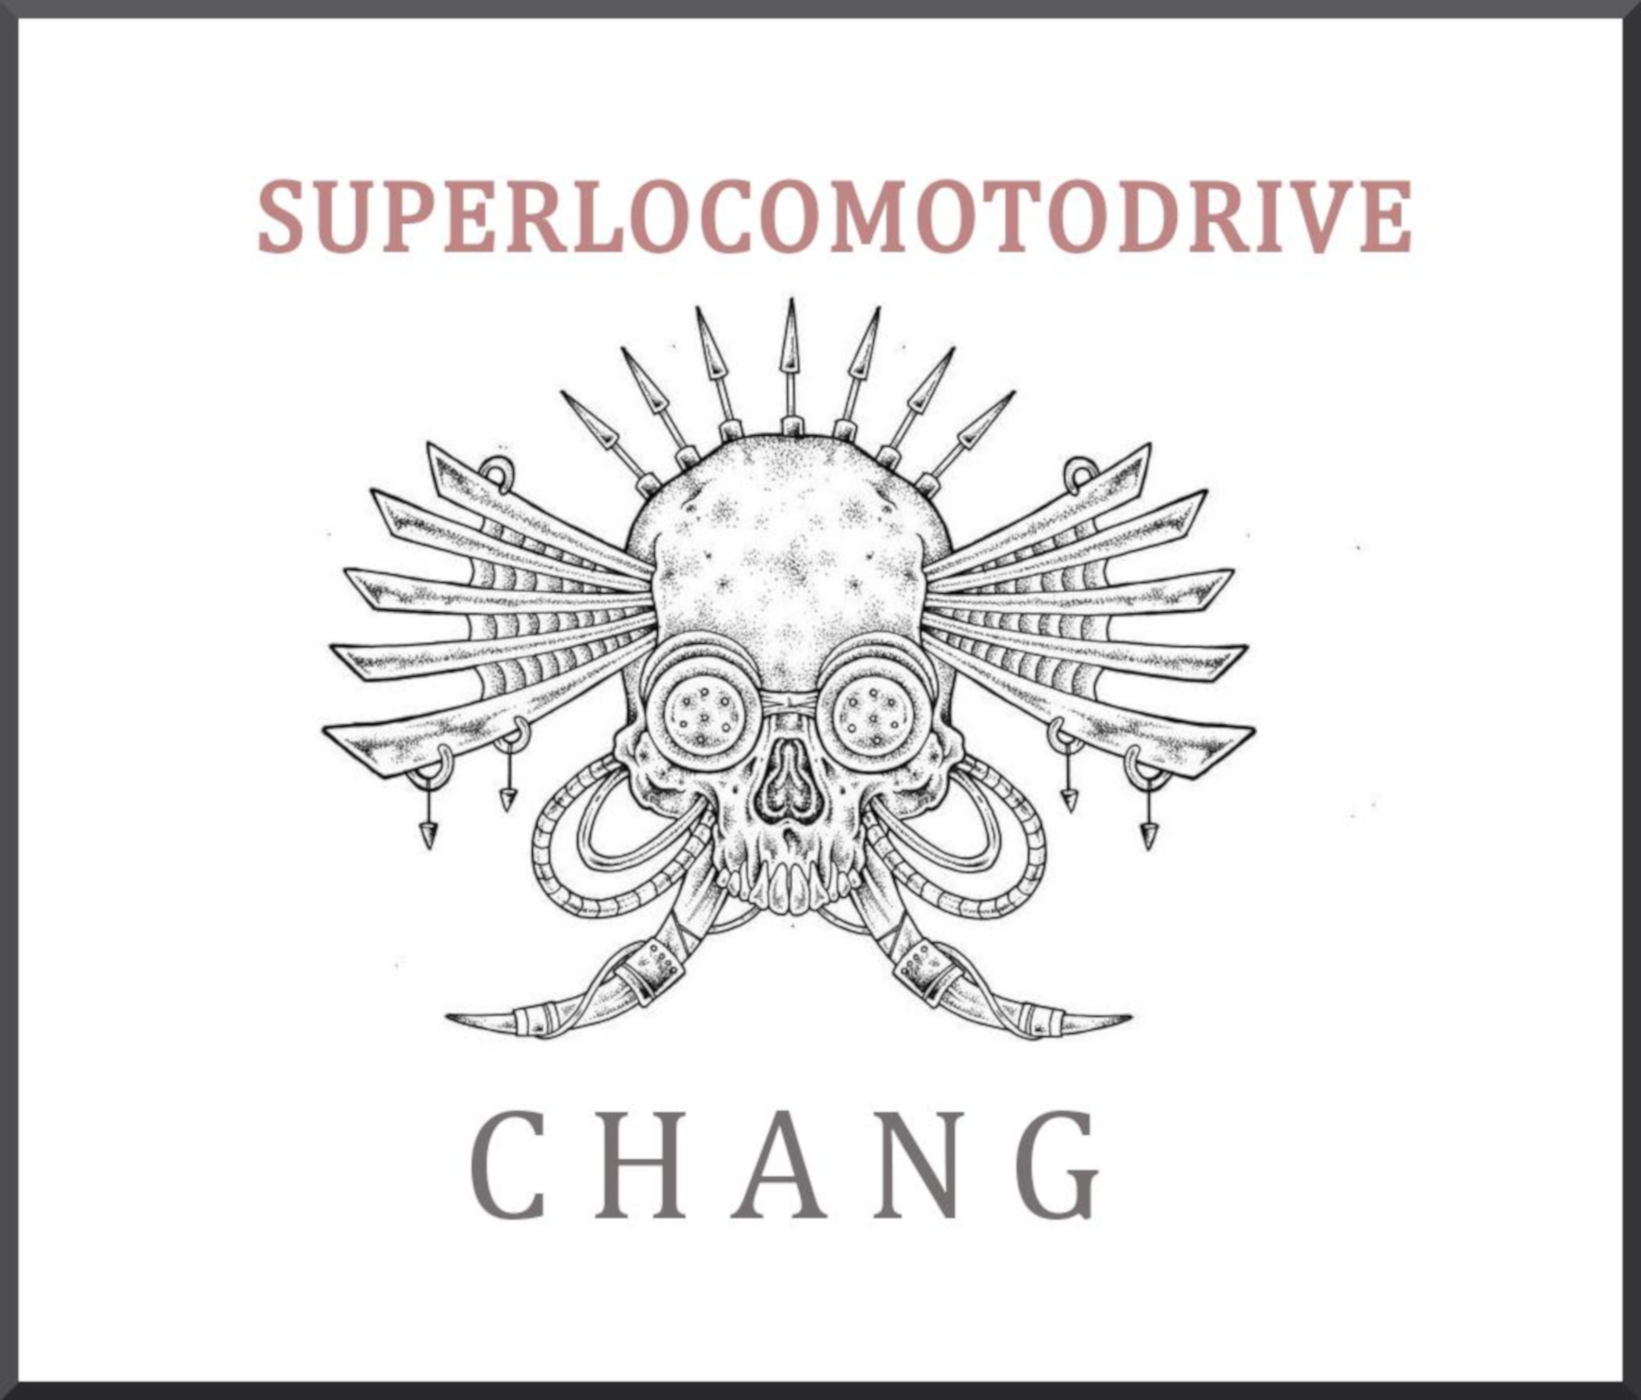 chang superlocomotodrive